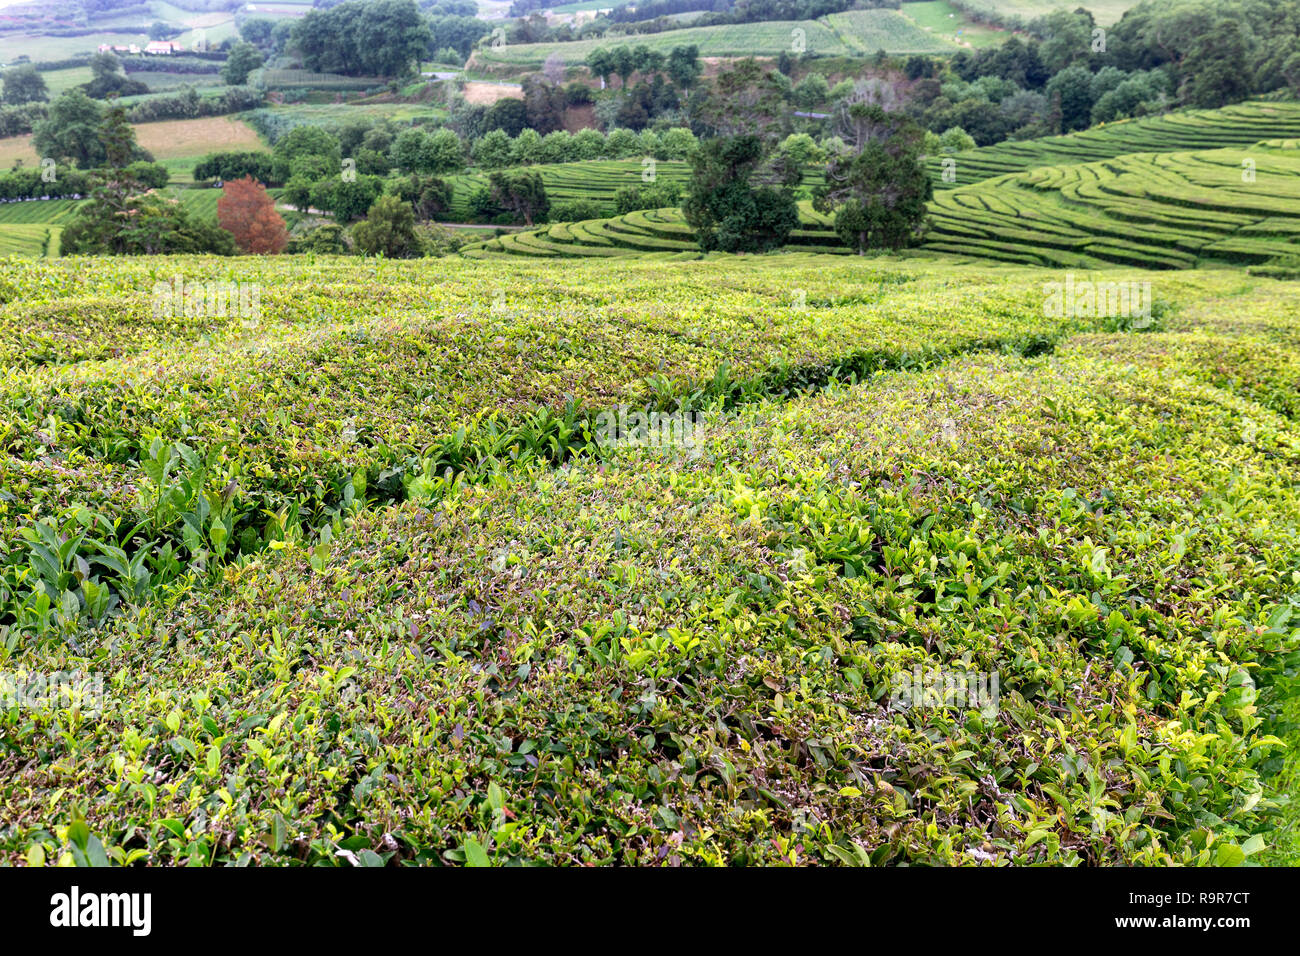 A landscape view of tea growing on the island of Sao Miguel in the middle of the Atlantic Ocean. - Stock Image